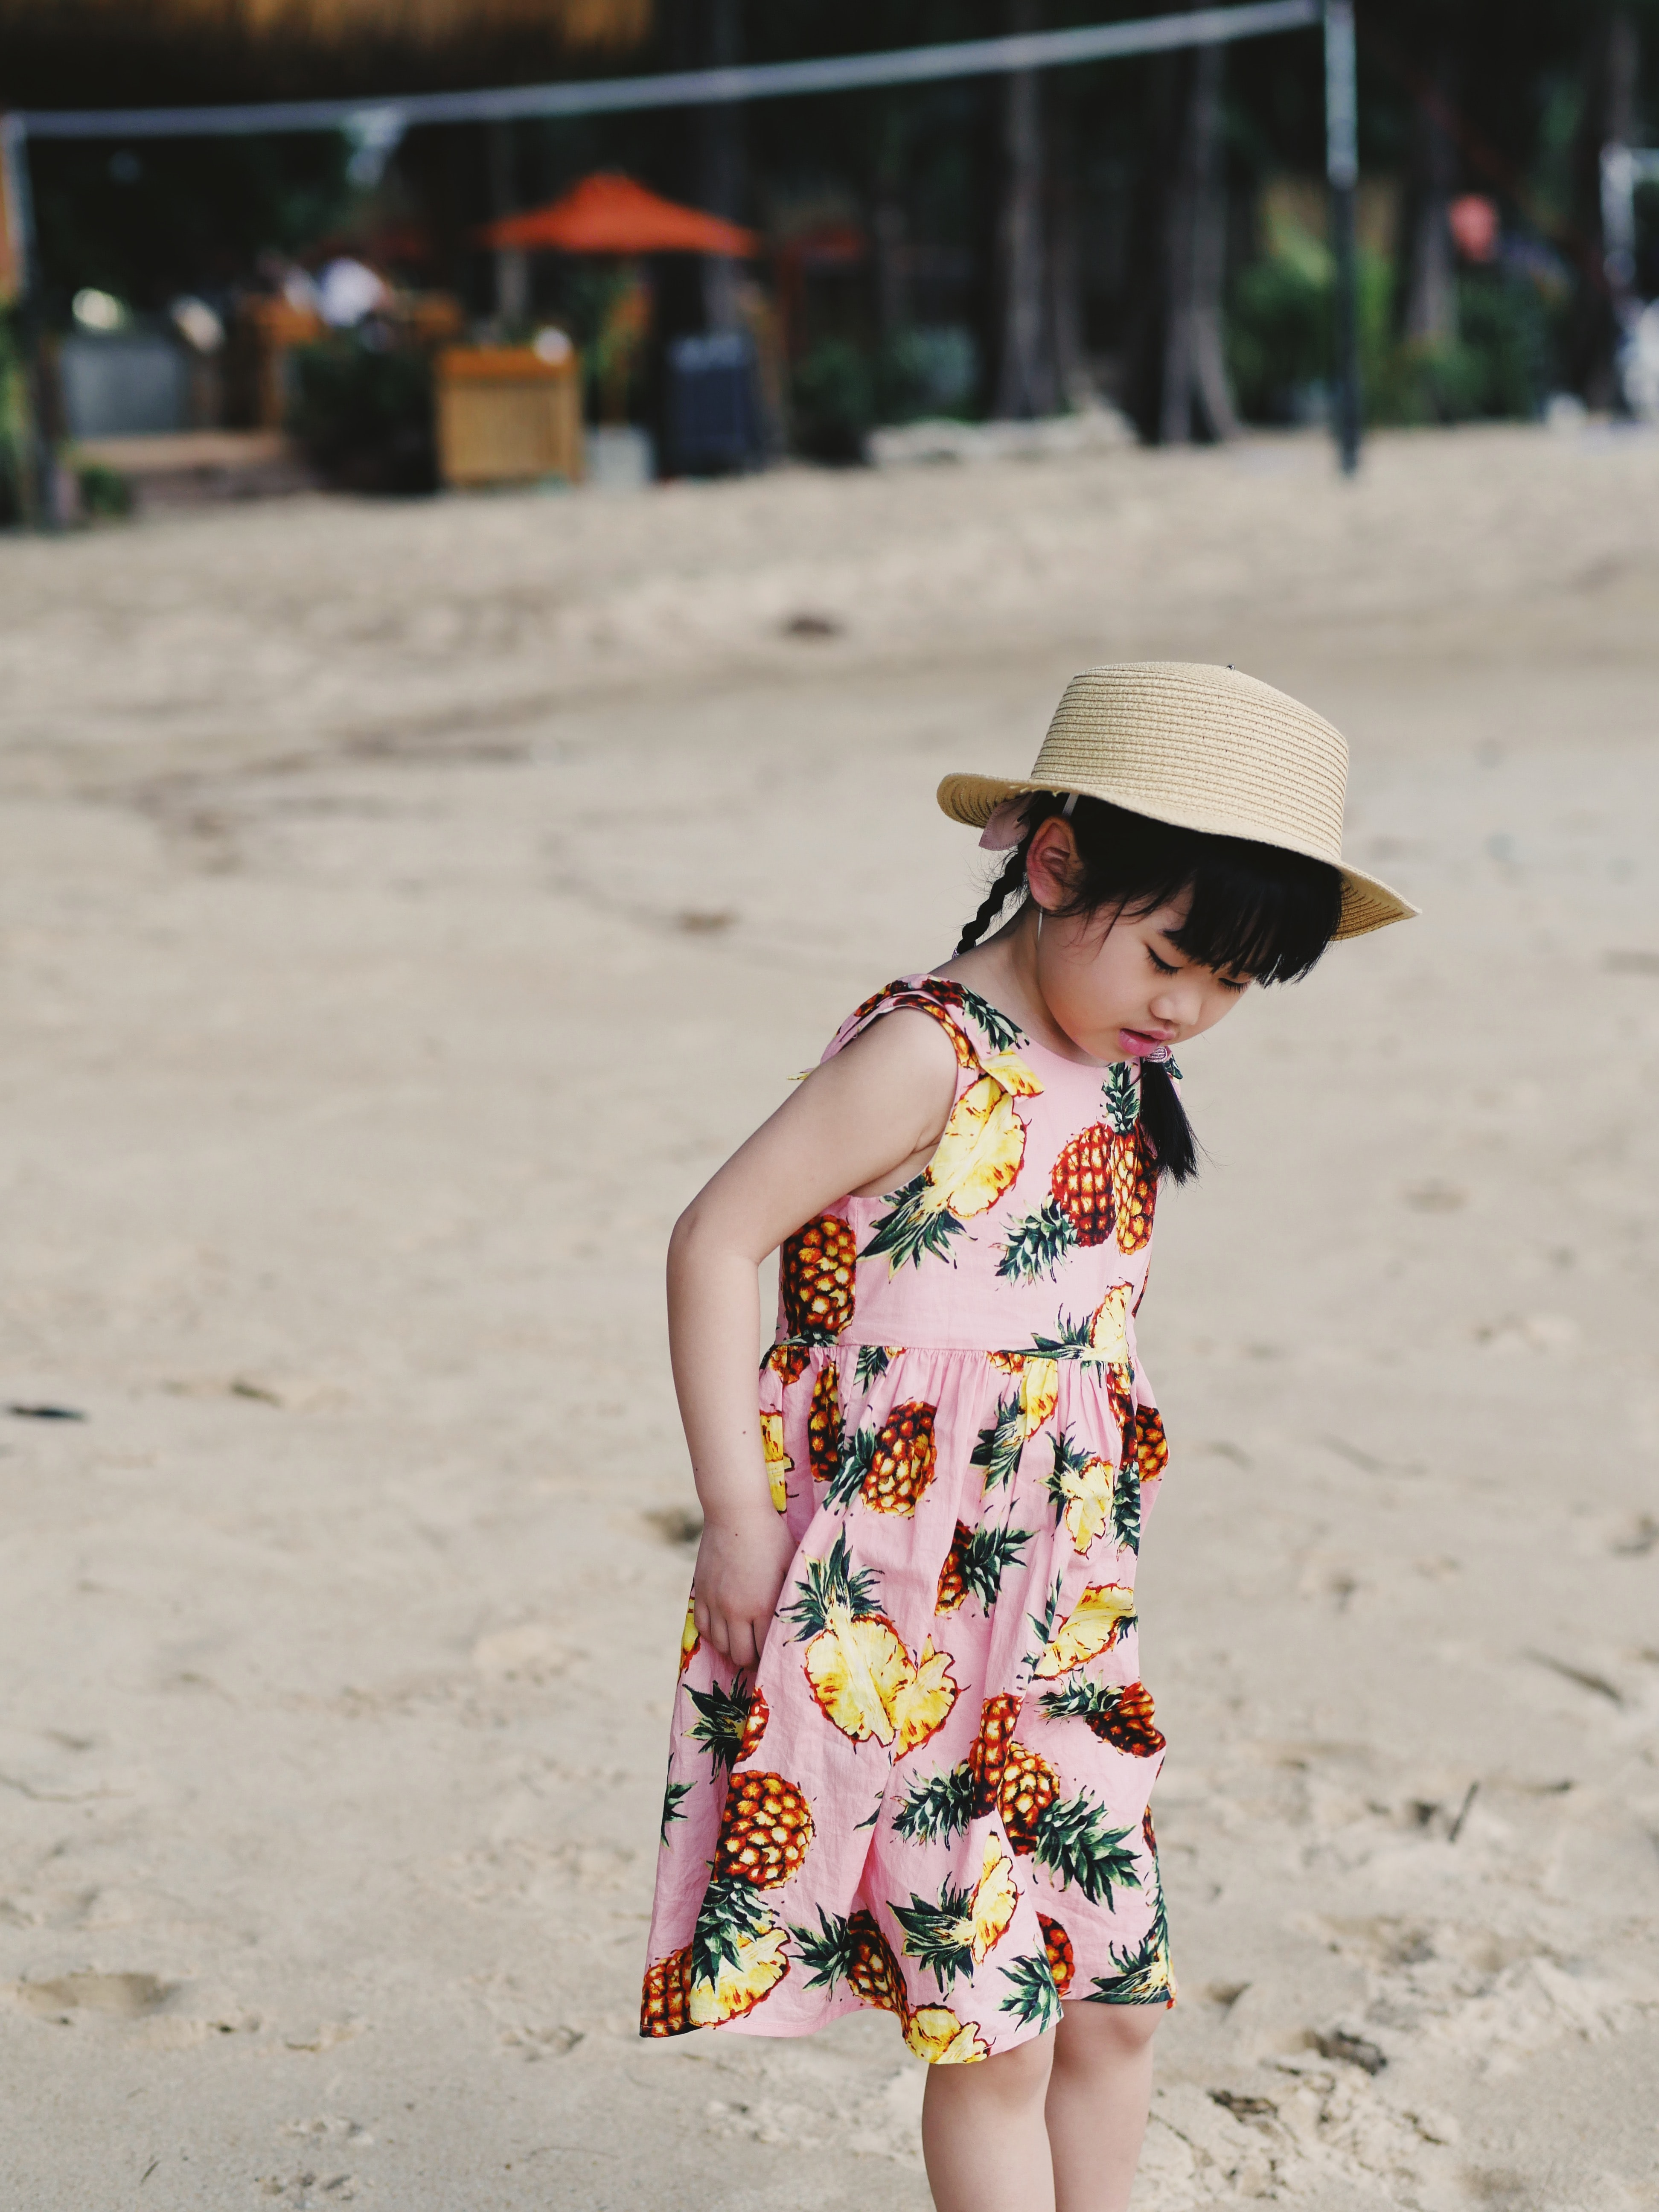 girl wearing pink dress standing on sand